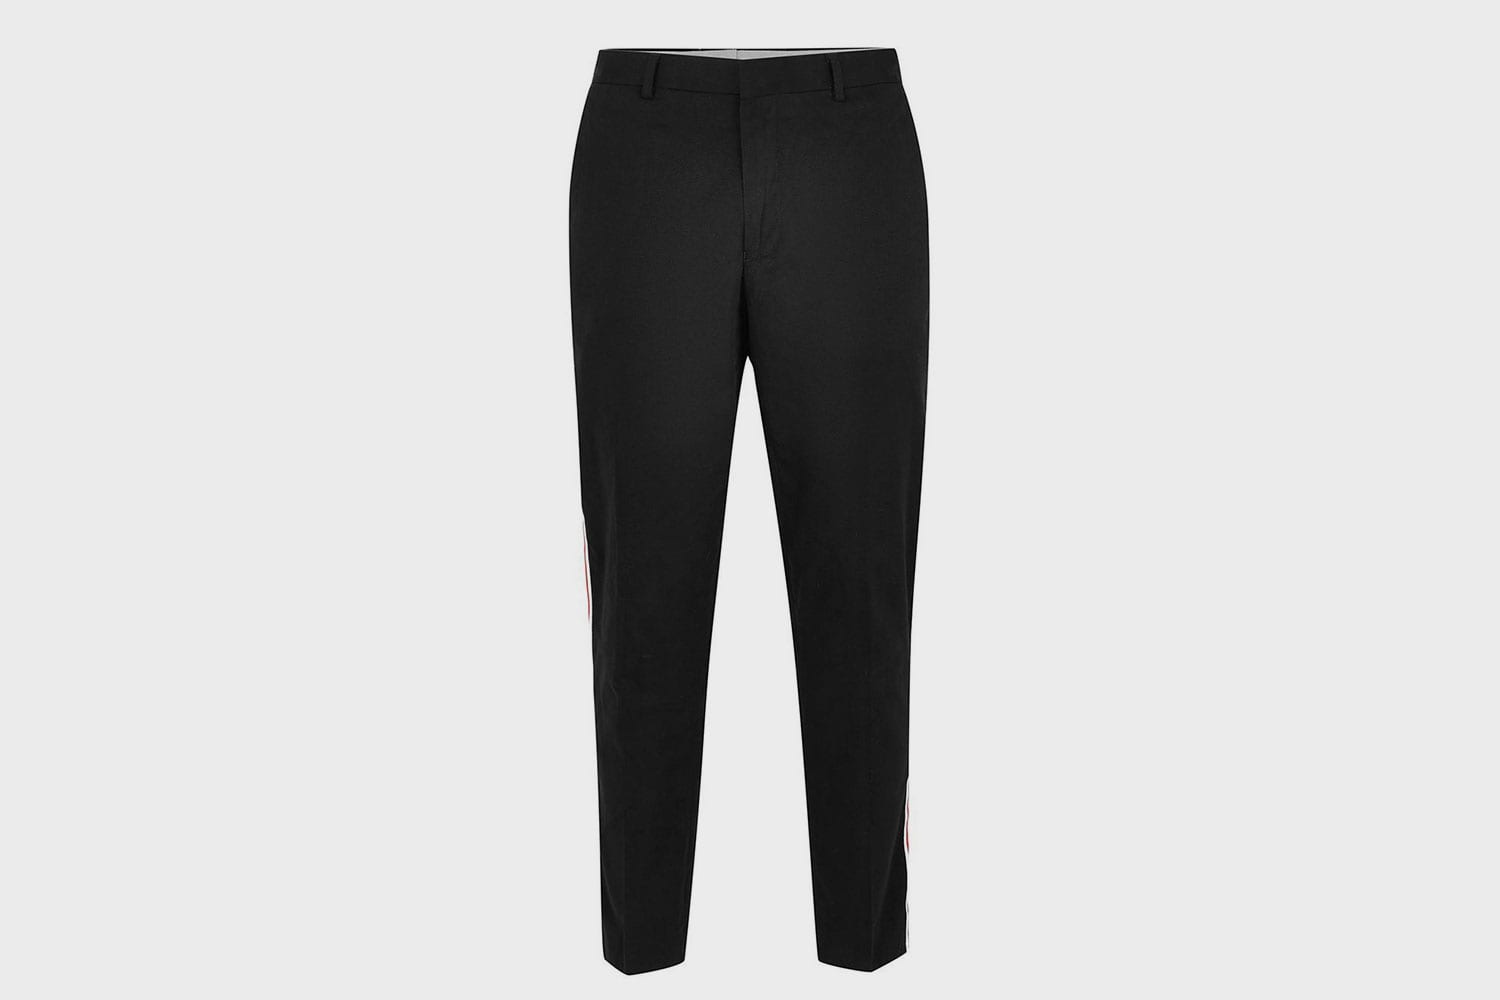 Topman-Side-stripe-trousers